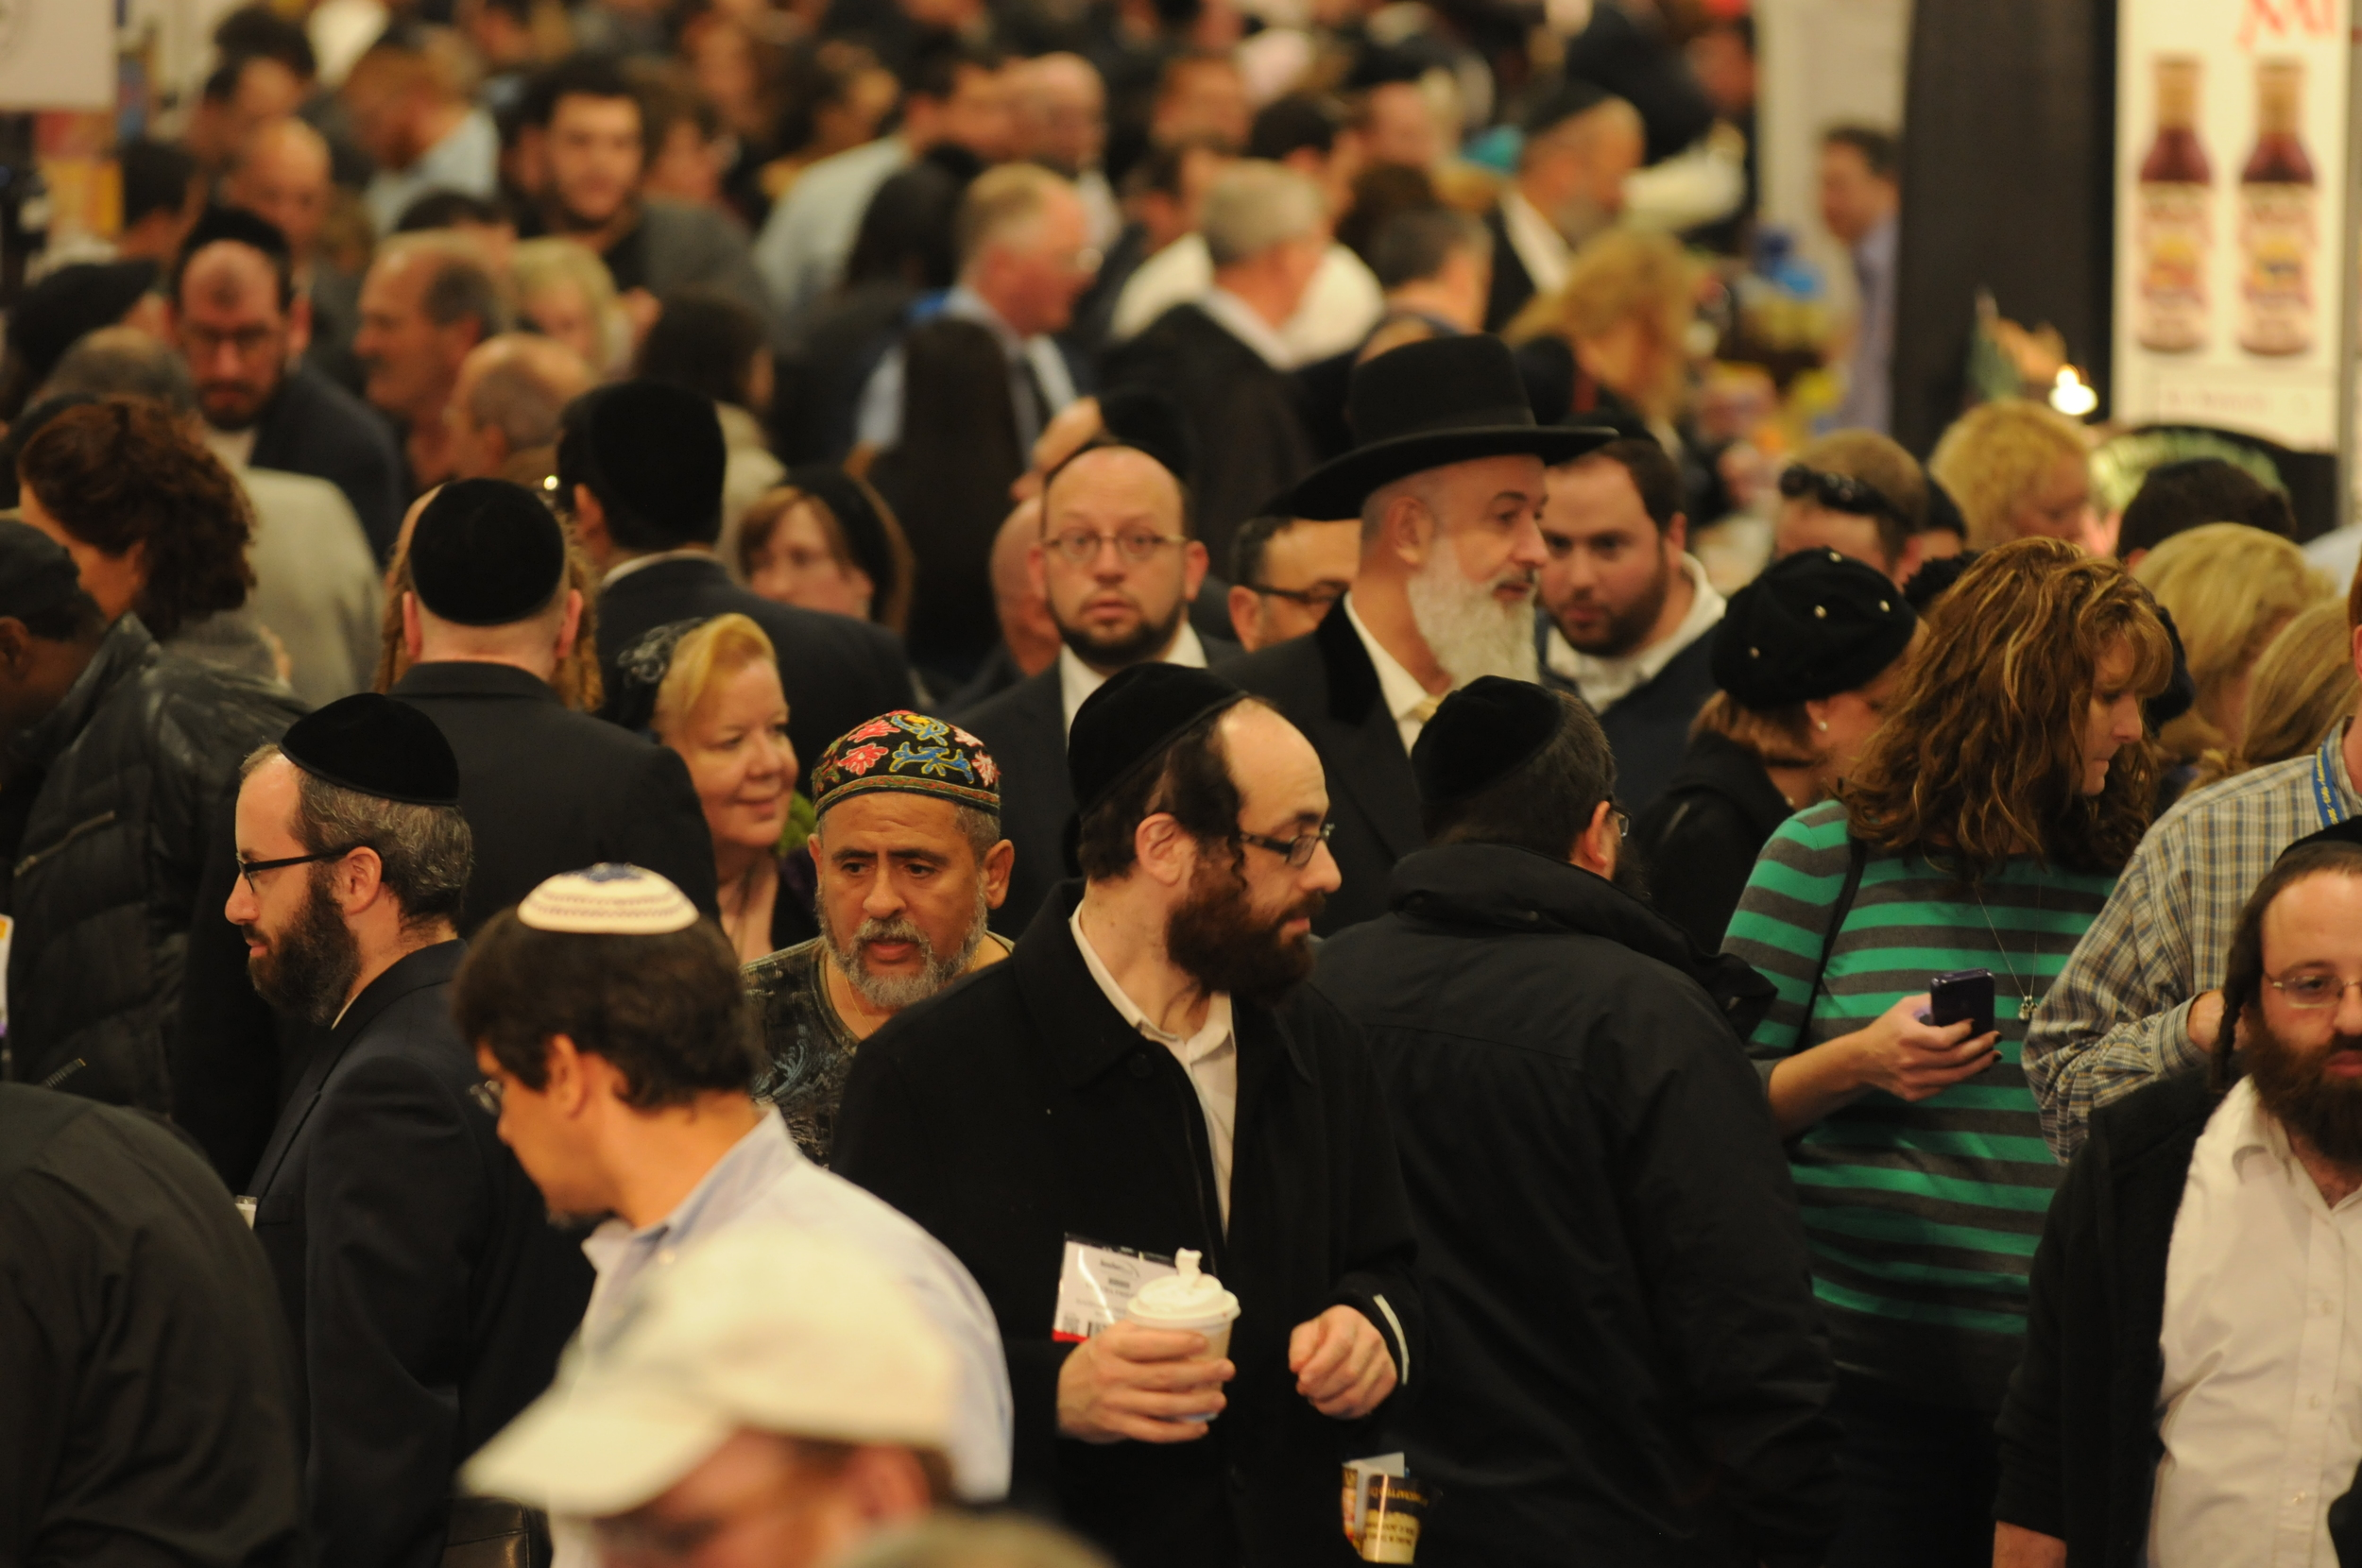 Click photo to download. Caption: The crowd at Kosherfest 2012, including Israeli chief rabbi Yona Metzger (wearing hat, near center). Credit: Levy/The Eelpond Photo Group.